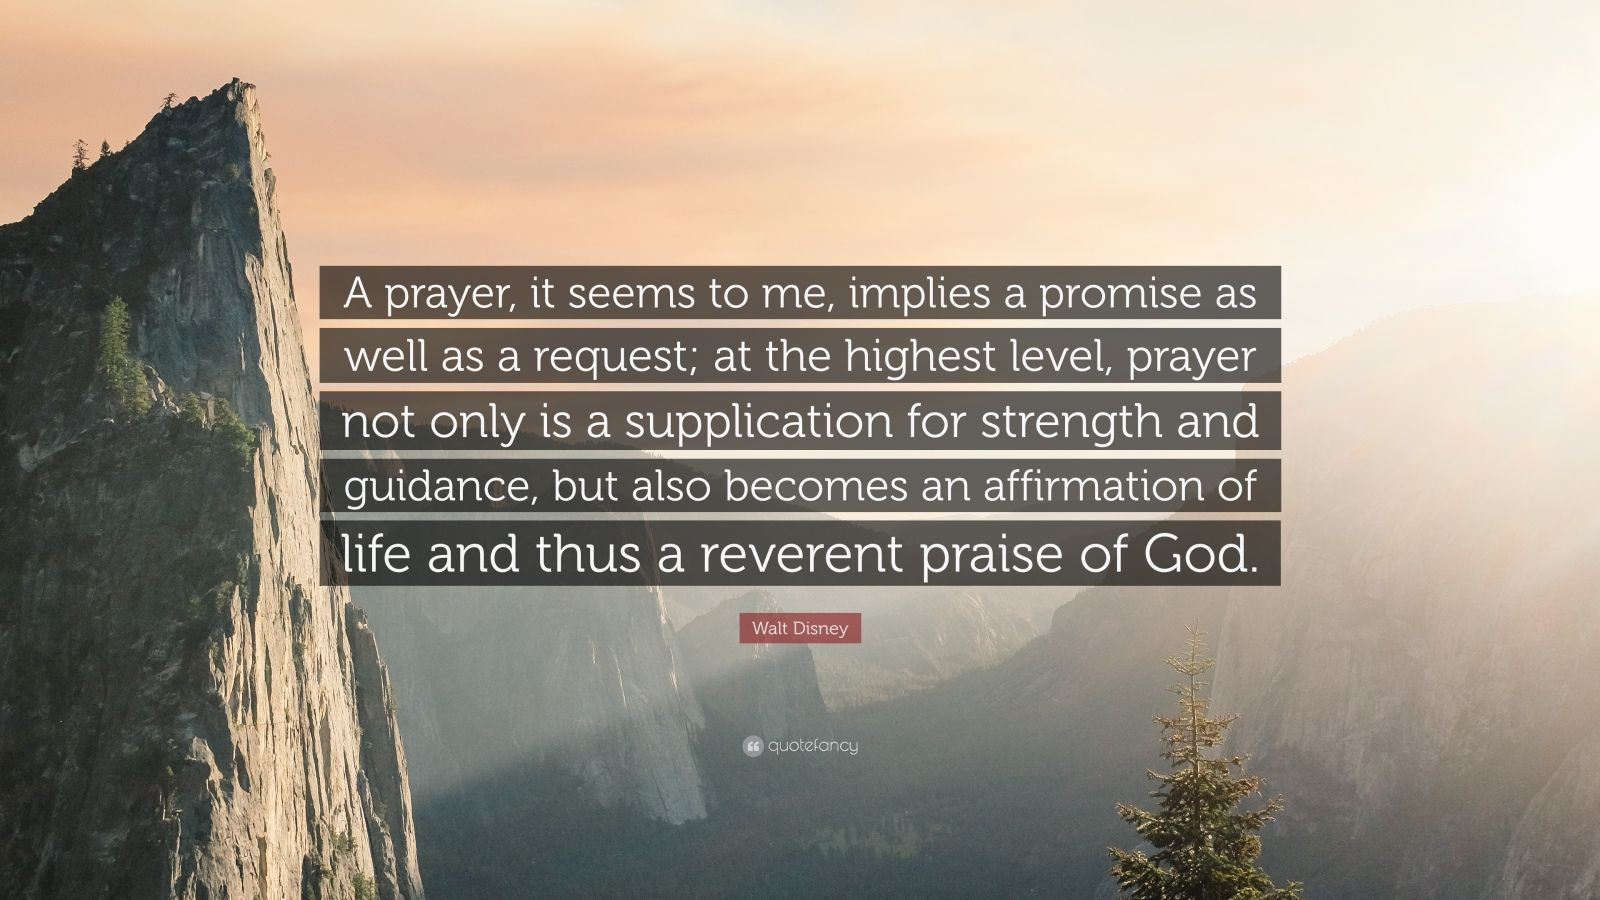 """Walt Disney Quote: """"A prayer, it seems to me, implies a promise as well as a request; at the highest level, prayer not only is a supplication for strength and guidance, but also becomes an affirmation of life and thus a reverent praise of God."""""""